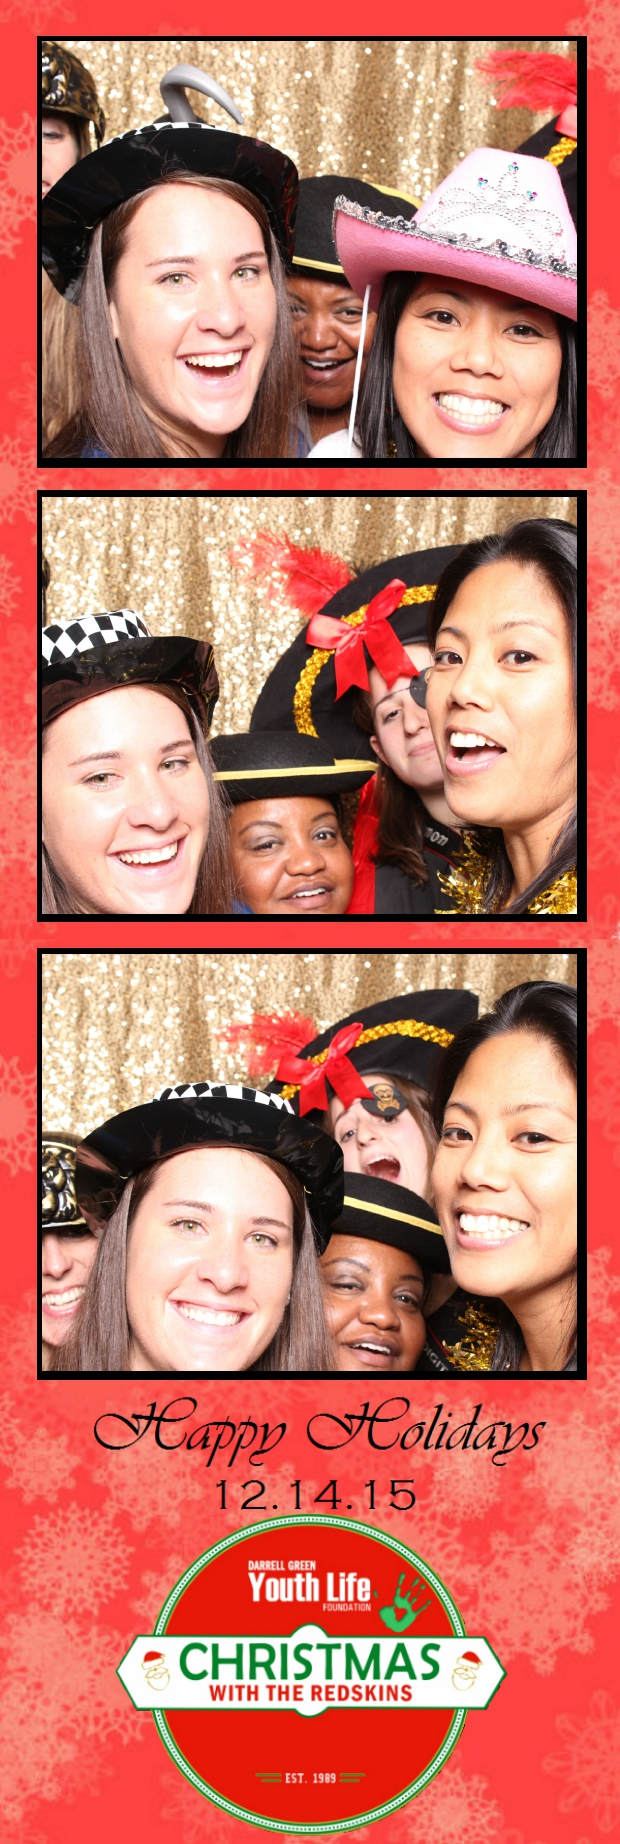 Guest House Events Photo Booth DGYLF Strips (68).jpg